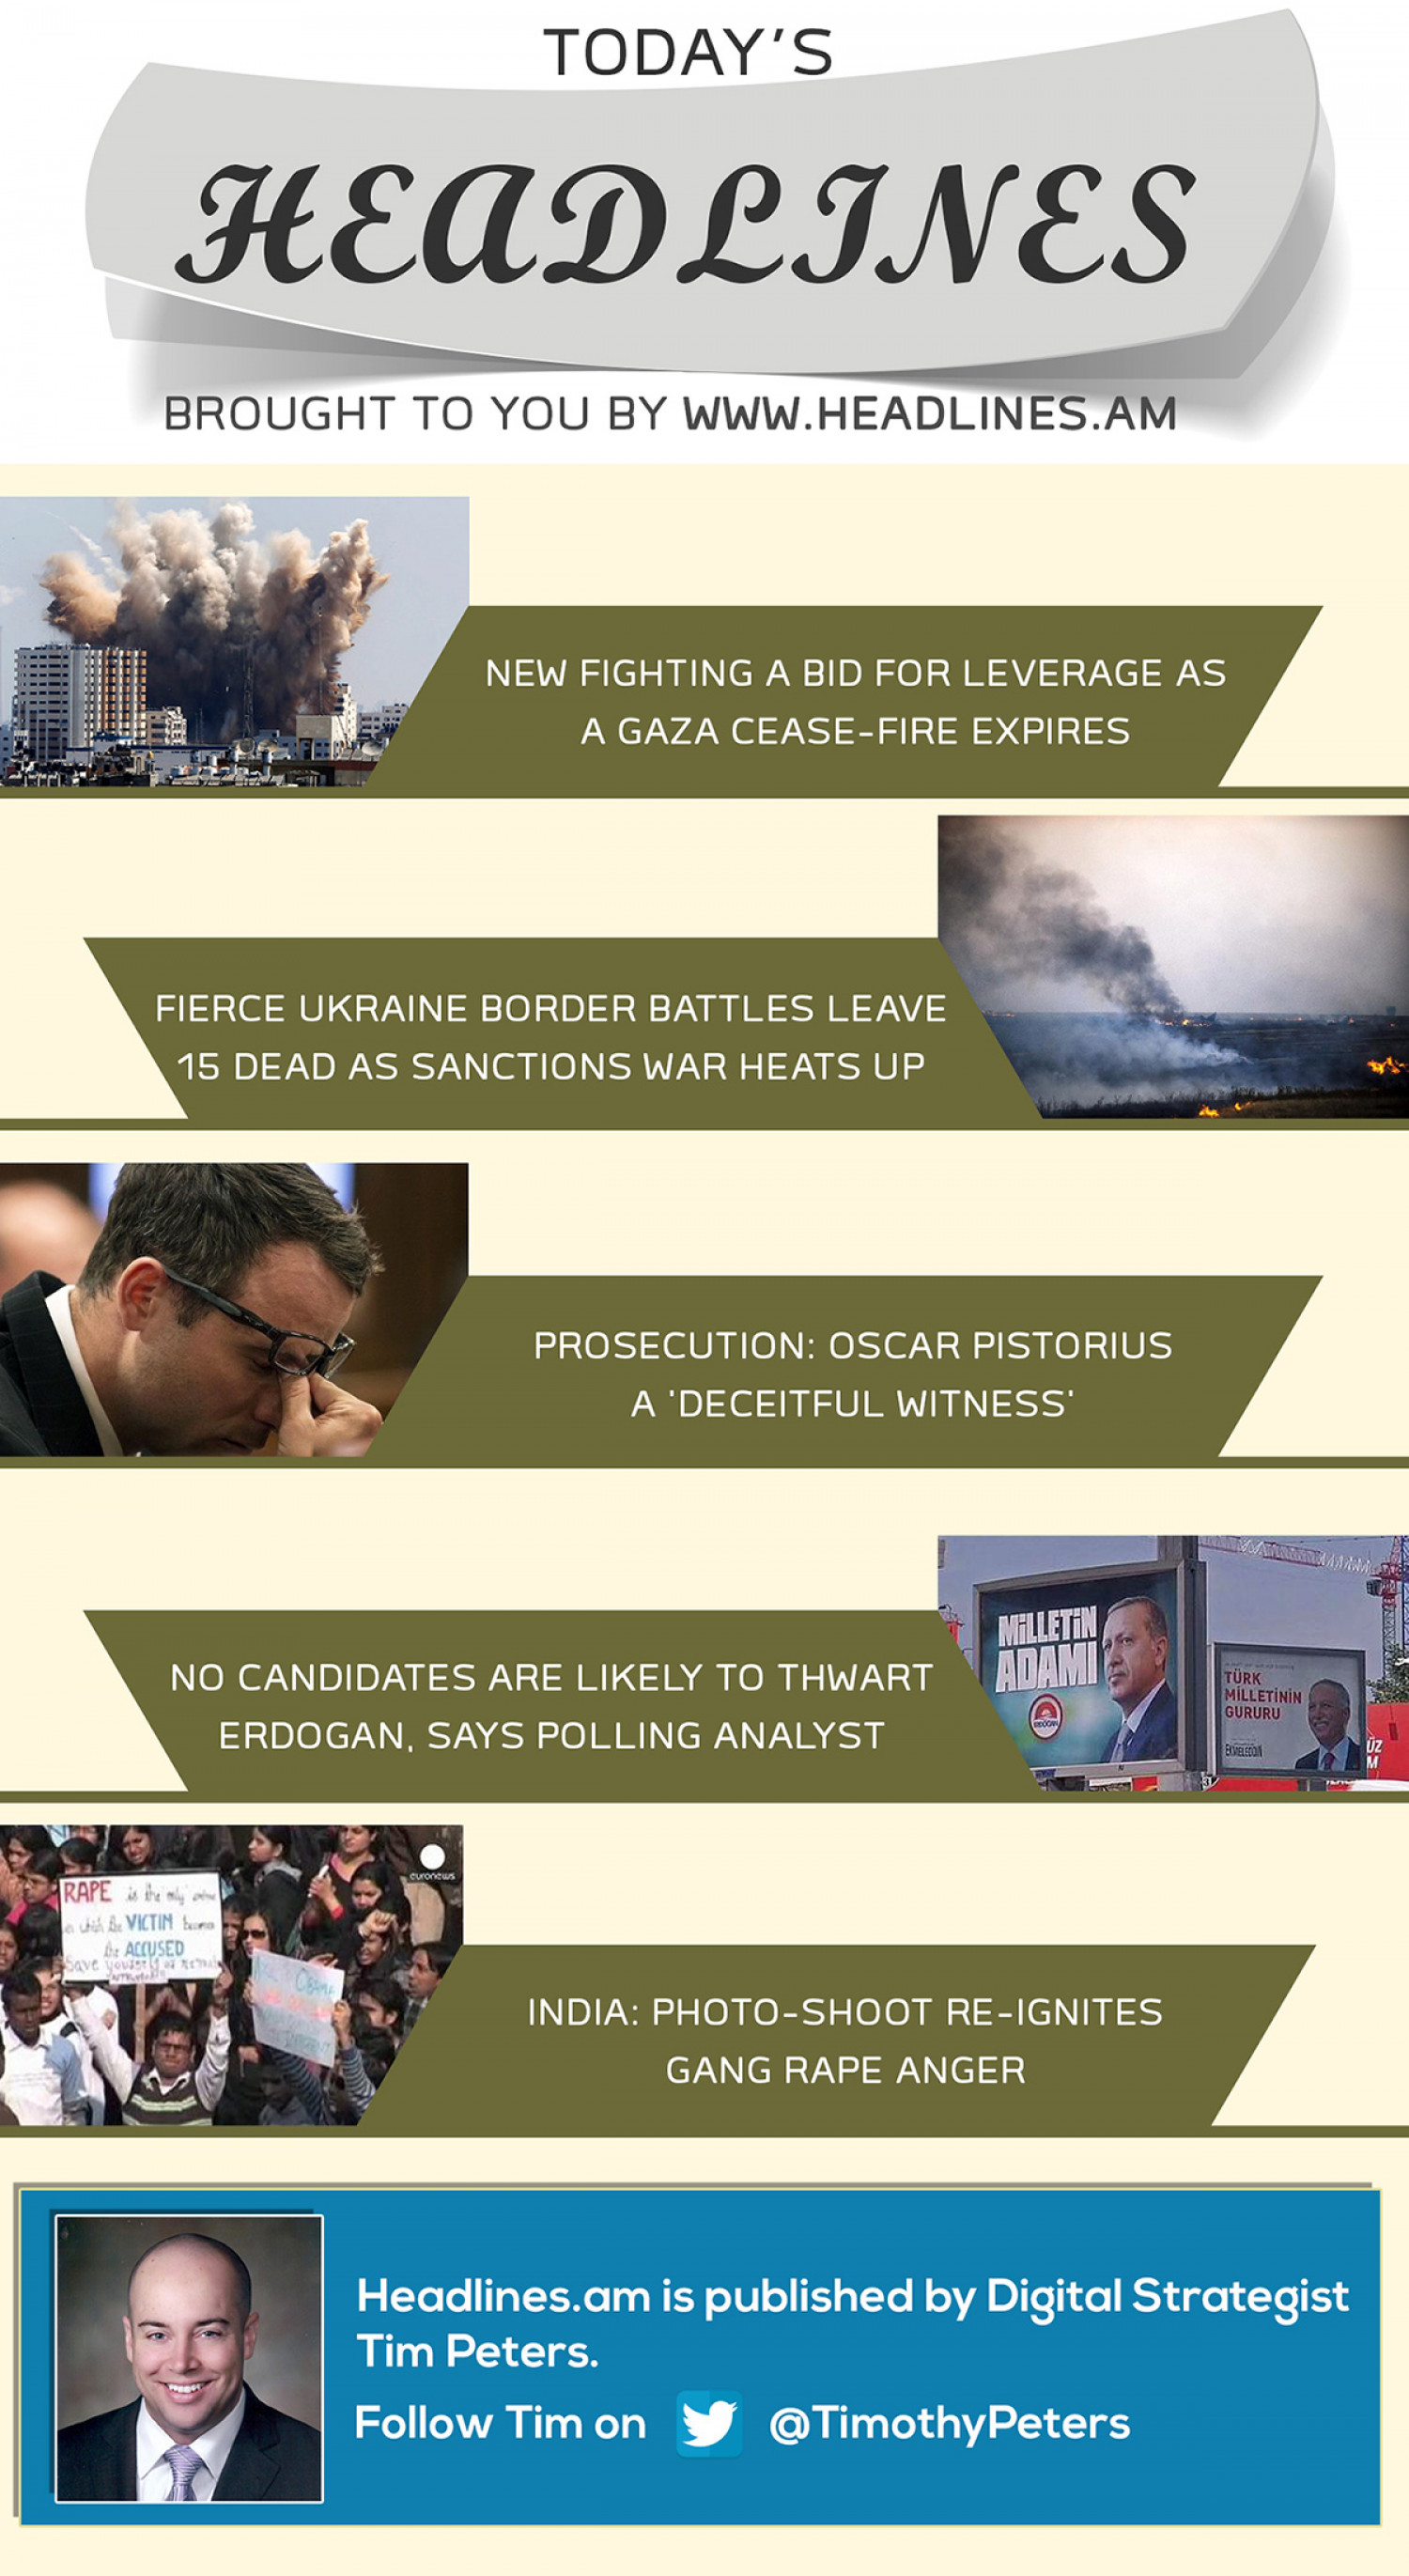 WORLD NEWS - AUGUST 9, 2014 Infographic